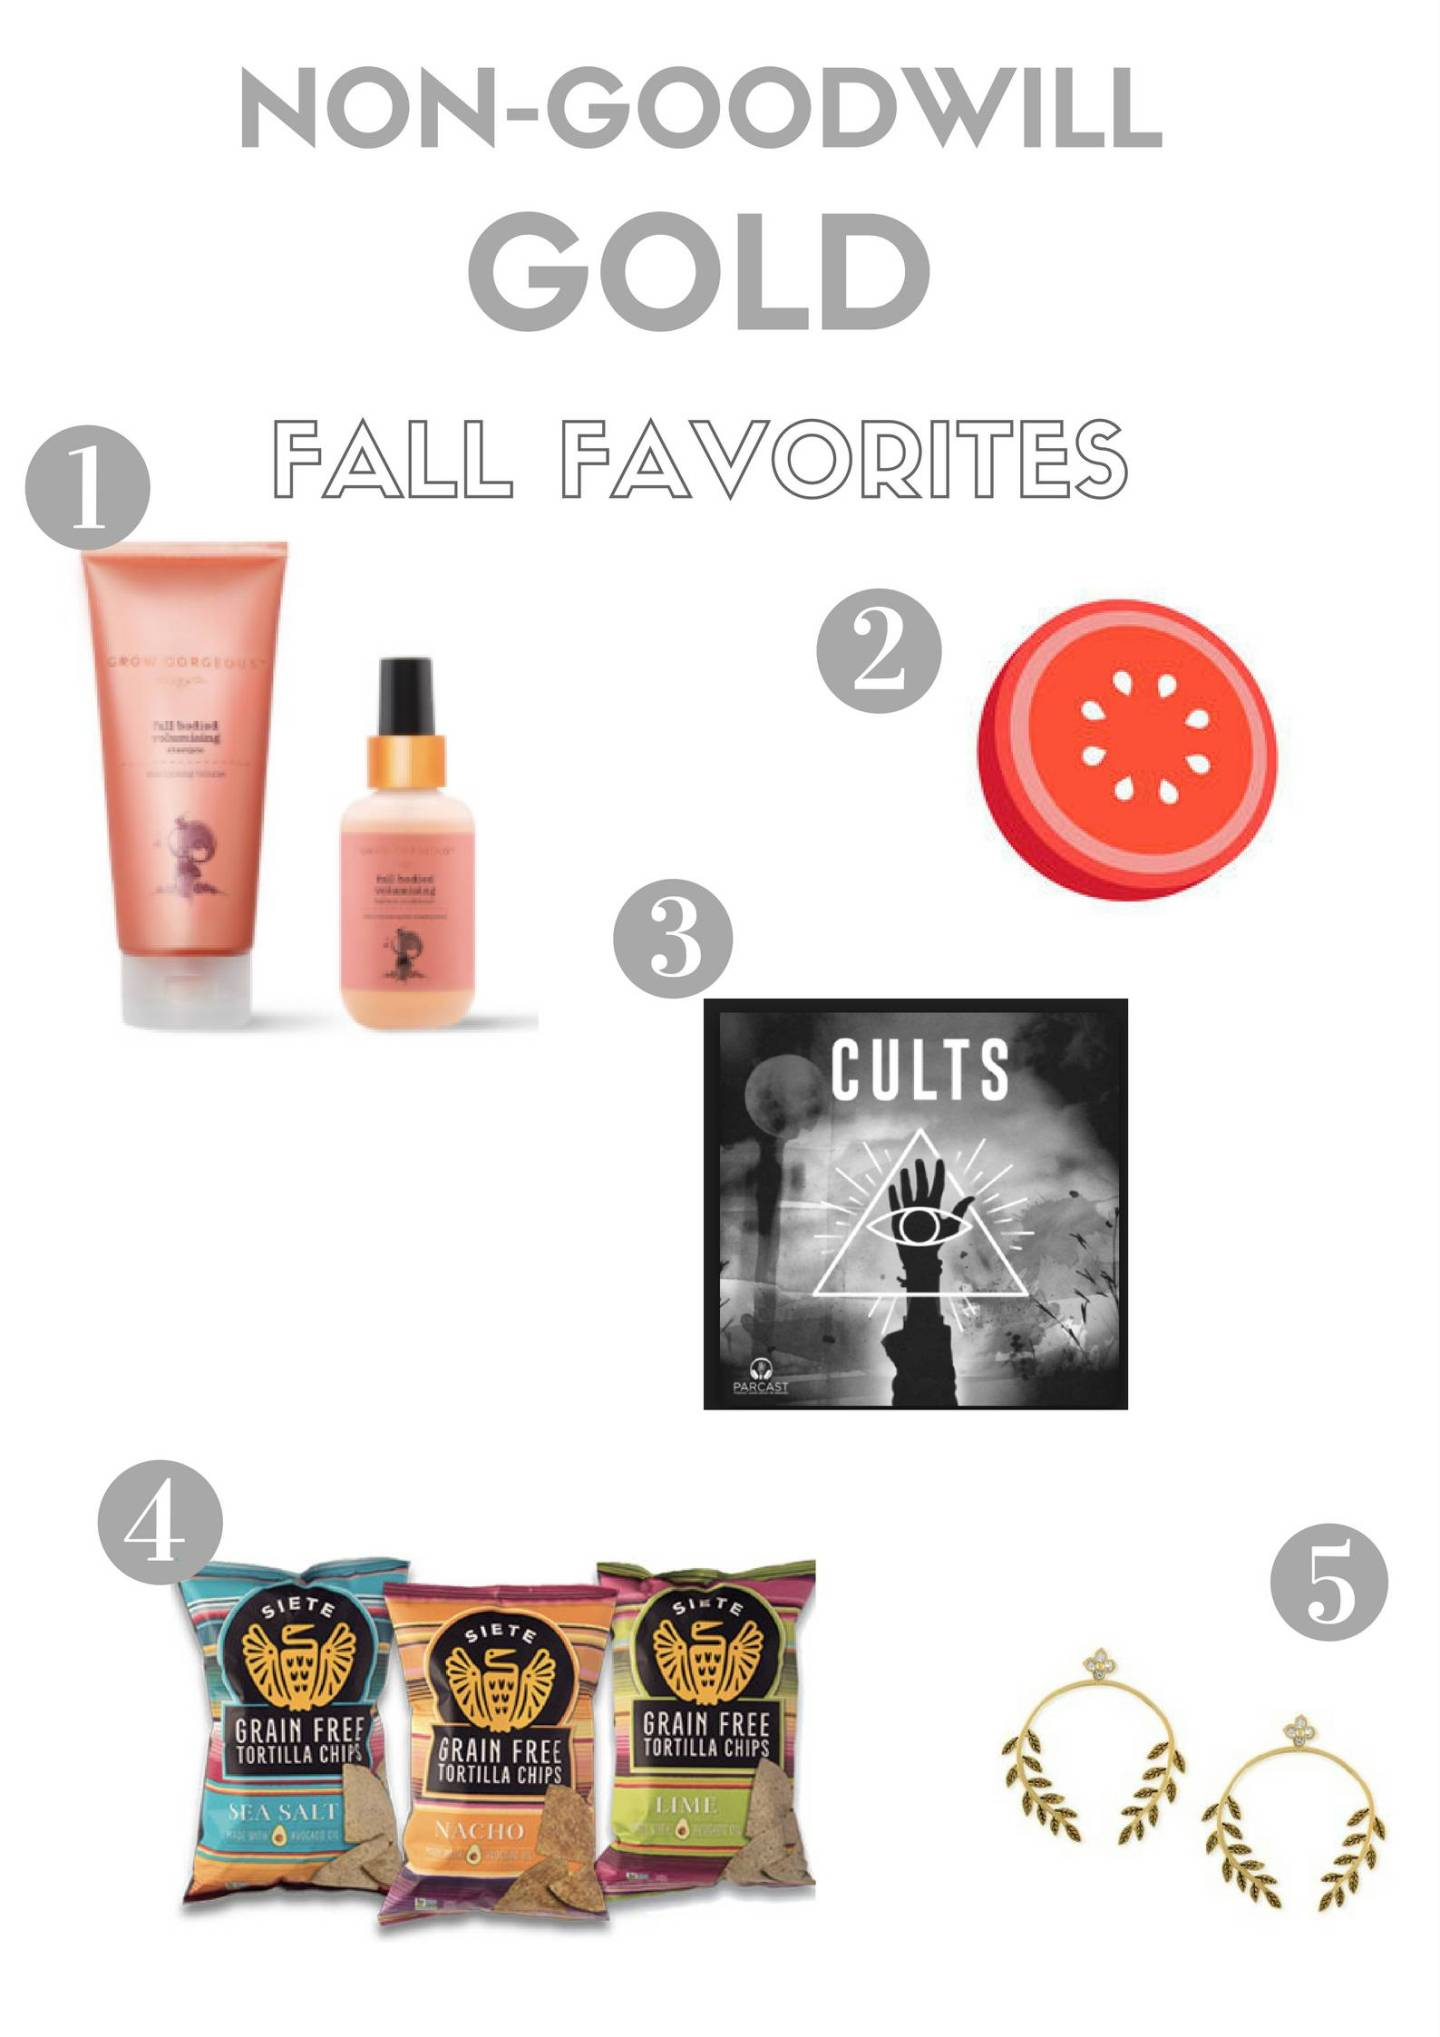 Non-Goodwill Gold: Fall Favorites